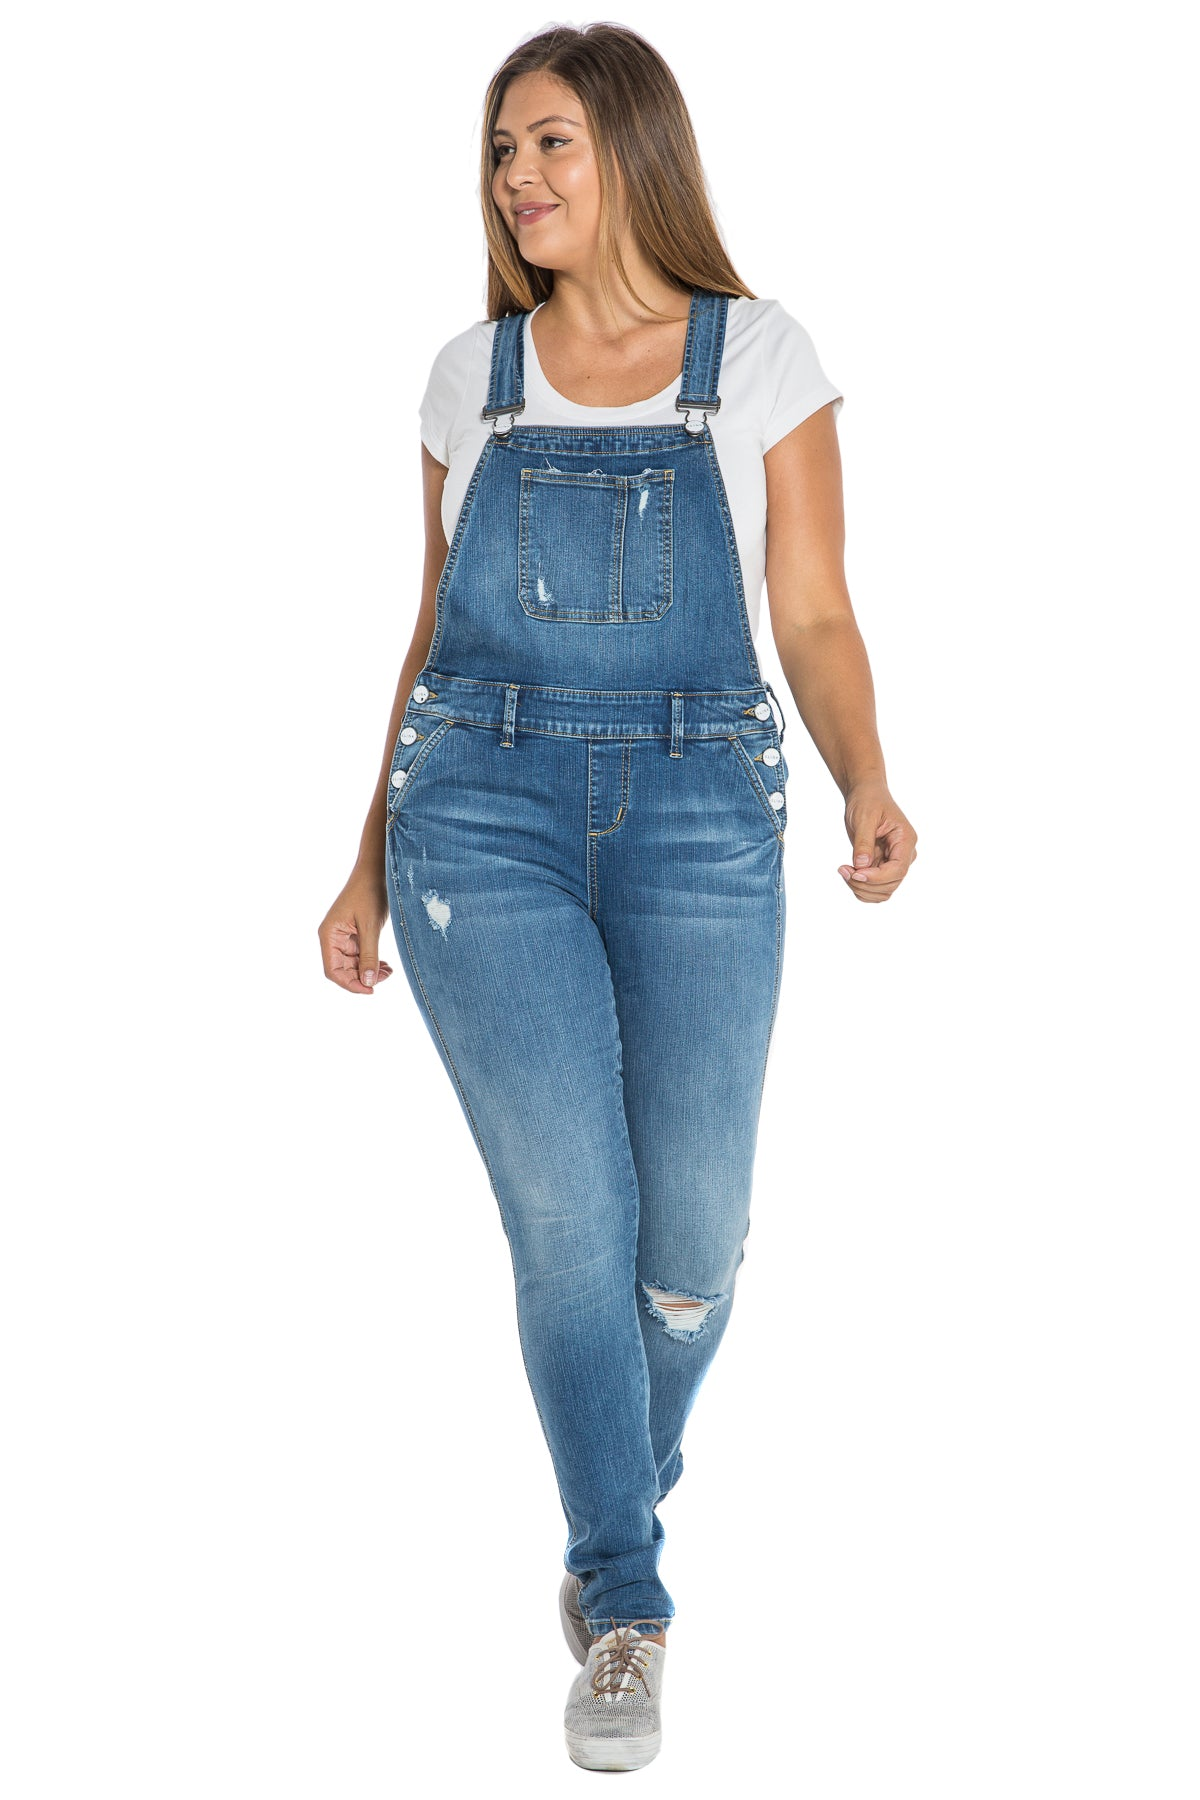 The Overall - TESSA